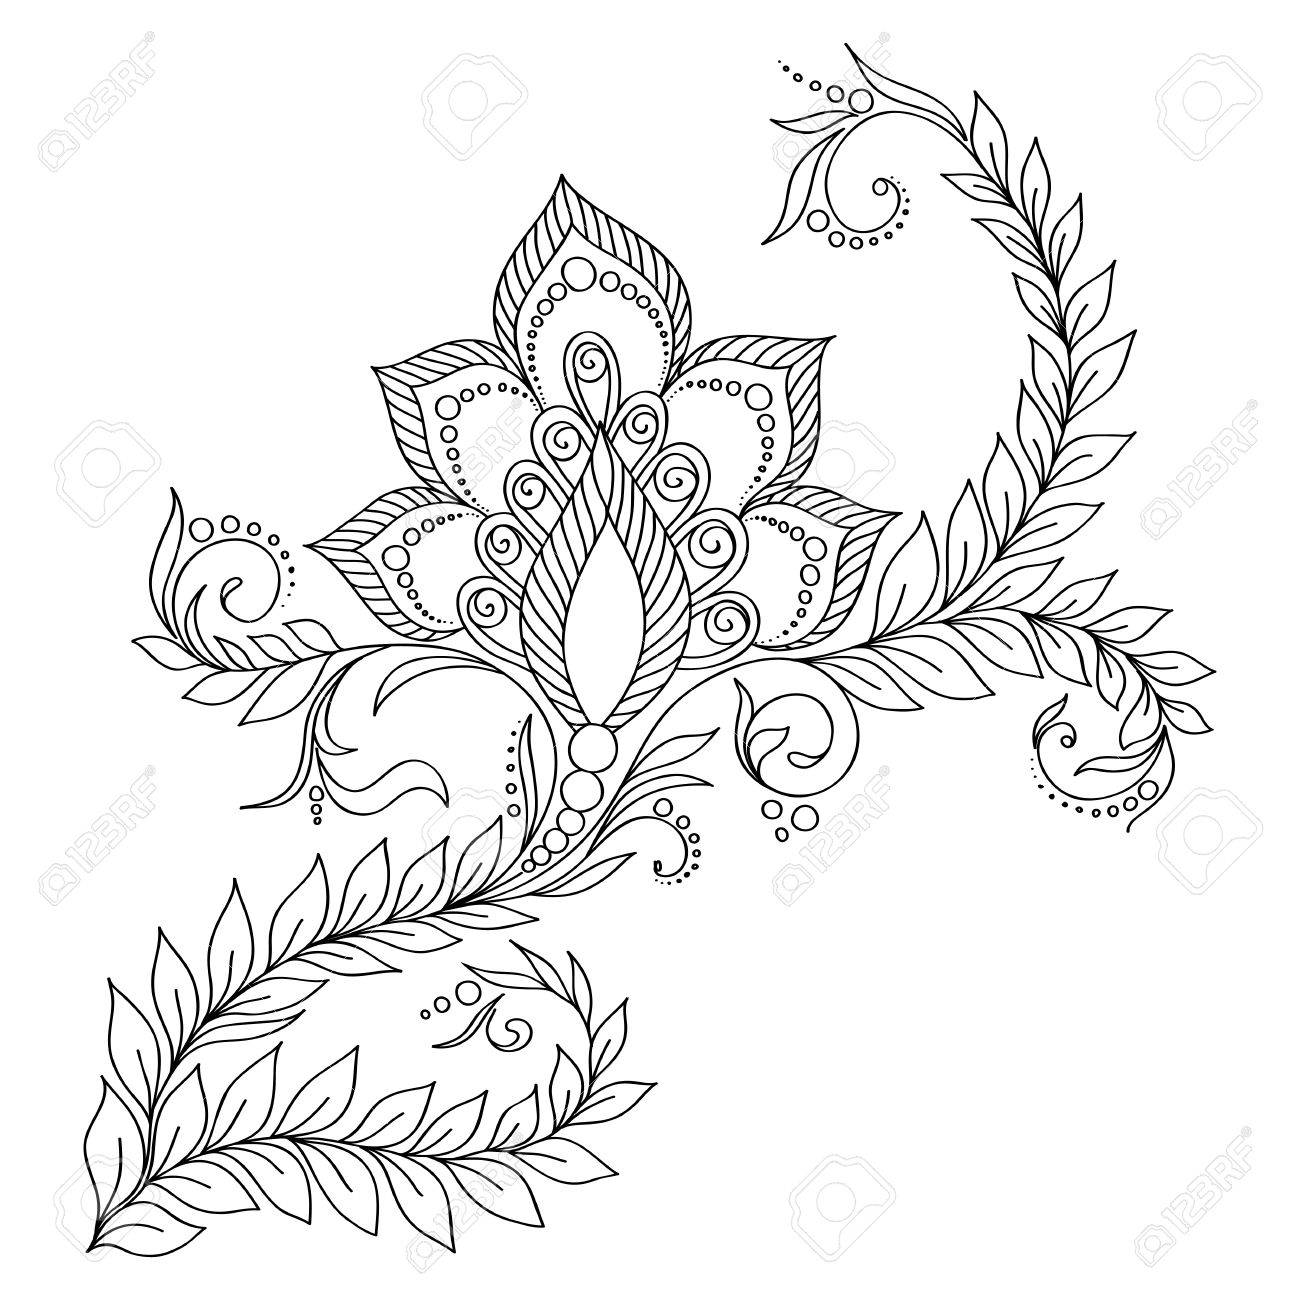 Pattern for coloring book. Coloring book pages for kids and adults.Vector abstract floral elements in indian style. Henna Mehndi Tattoo Style Doodles - 47645933